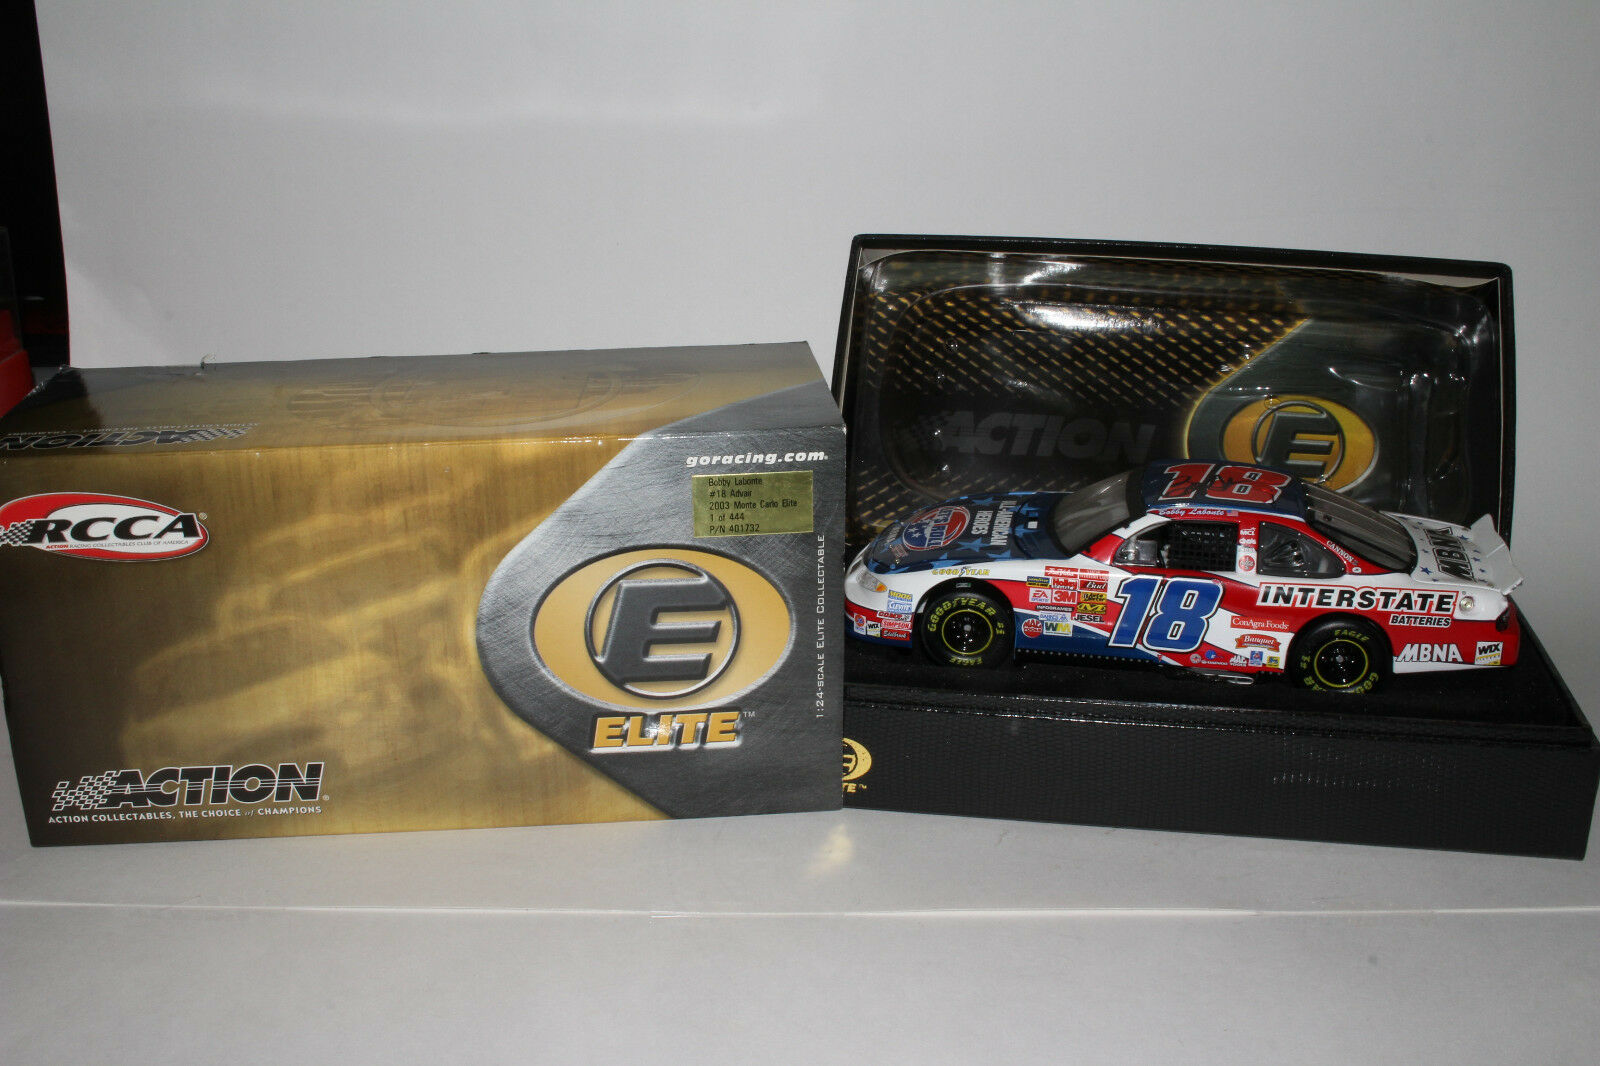 Action Rcca Elite Bobby Labonte  18 Advair 2003 Chevy Monte Carlo, Dédicacé